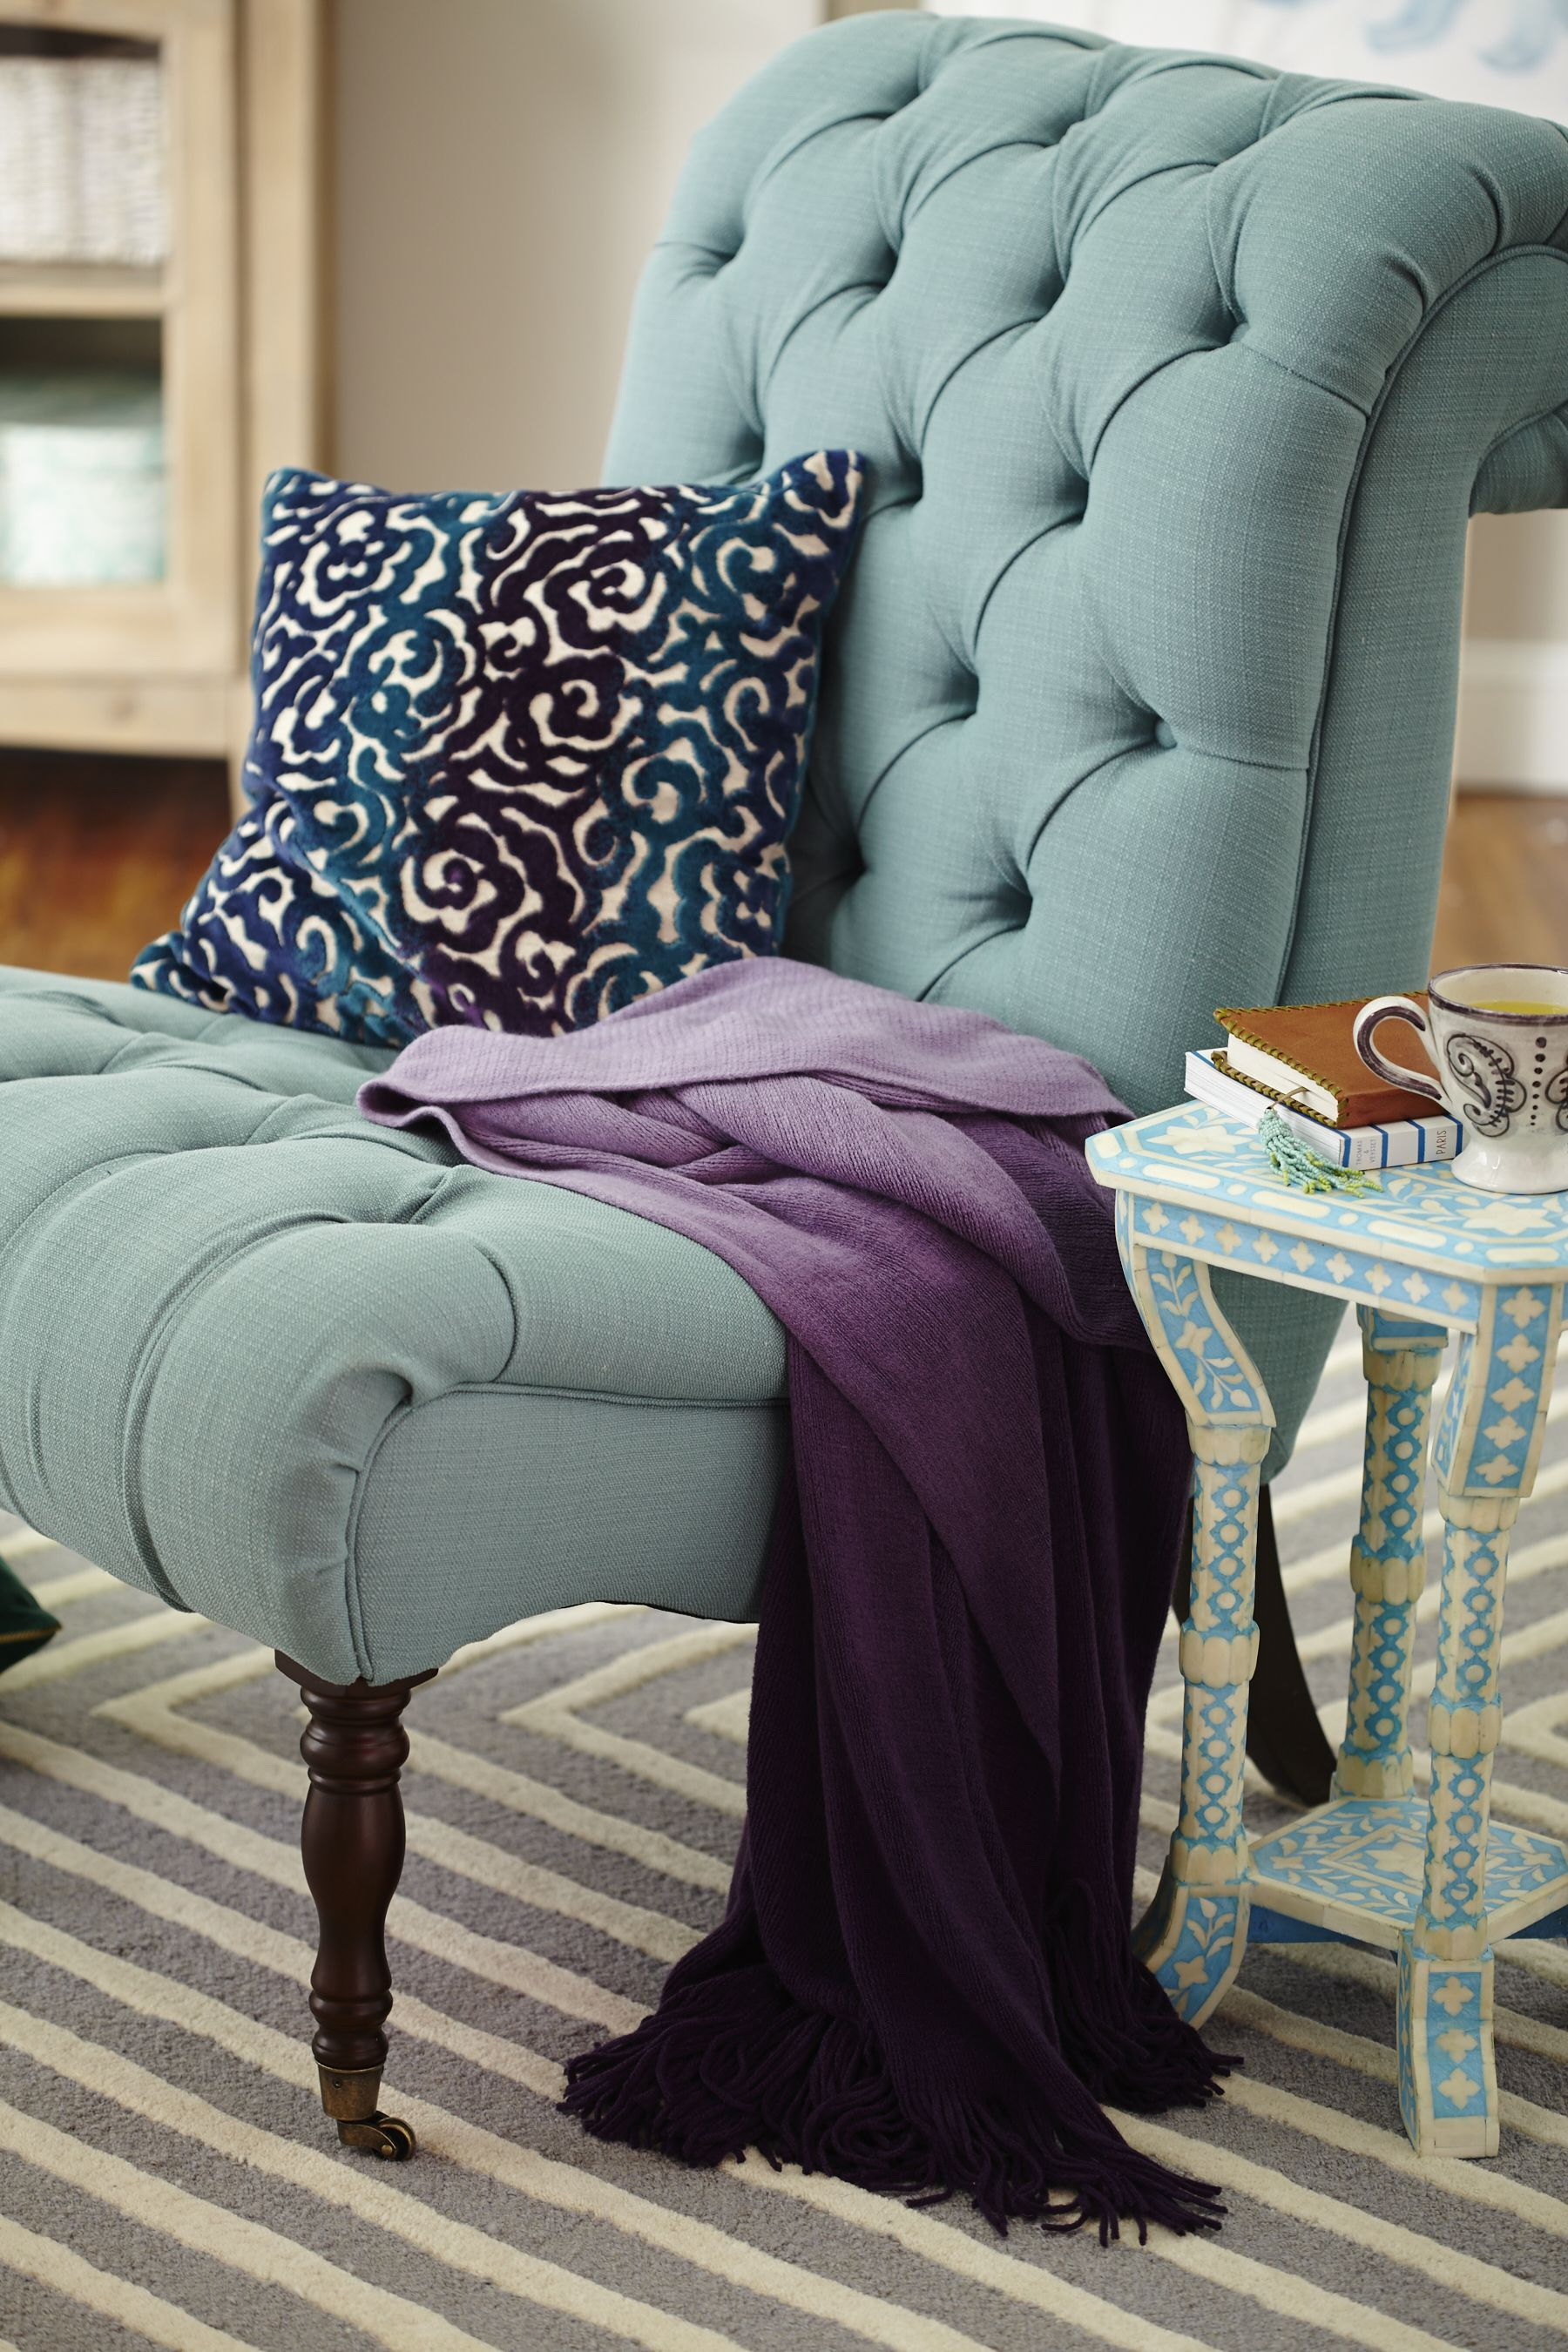 Pillow Chairs Sitting Pretty At A Perfect Price Is Homegoodshappy Any